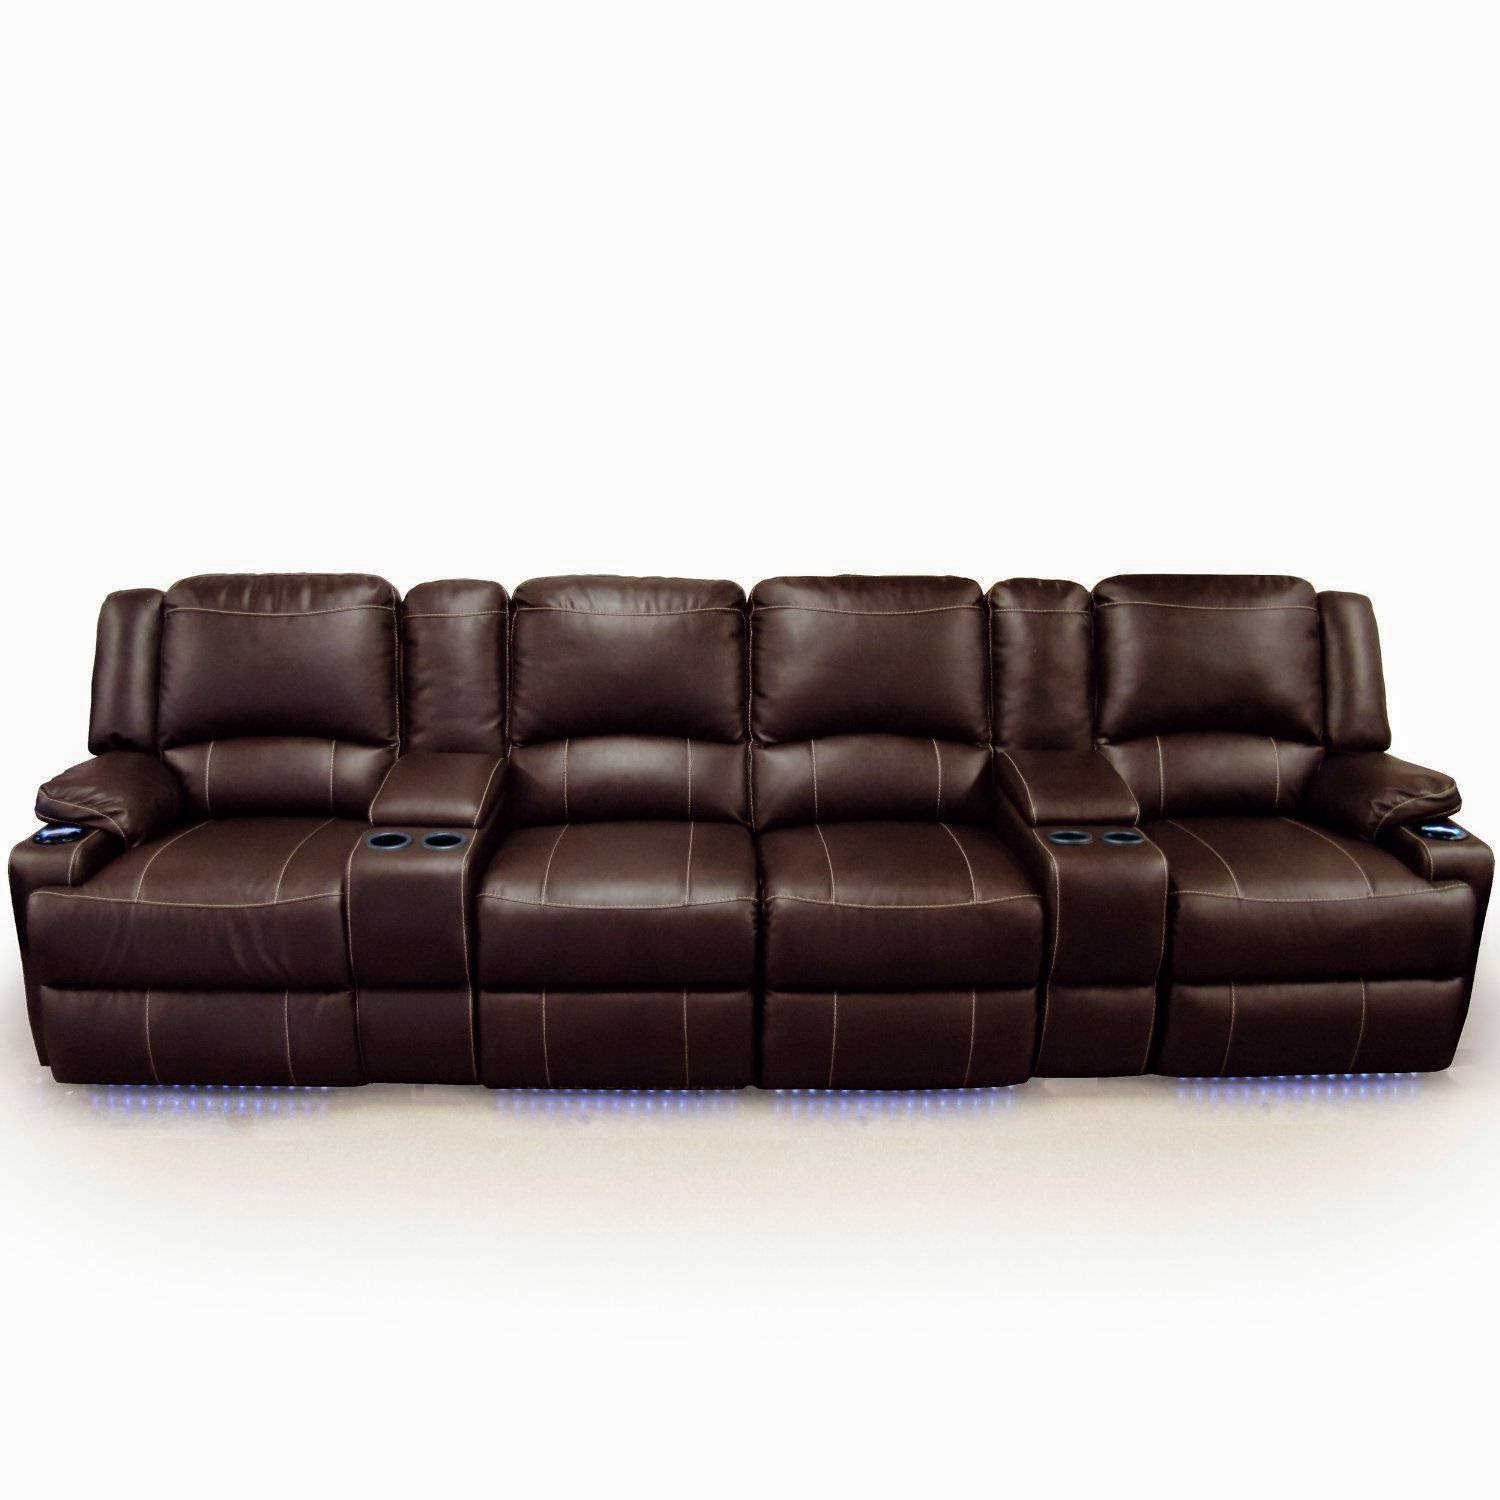 Clay Madison - Home Theater Seating Row of 4 Chairs with Middle Love Seat